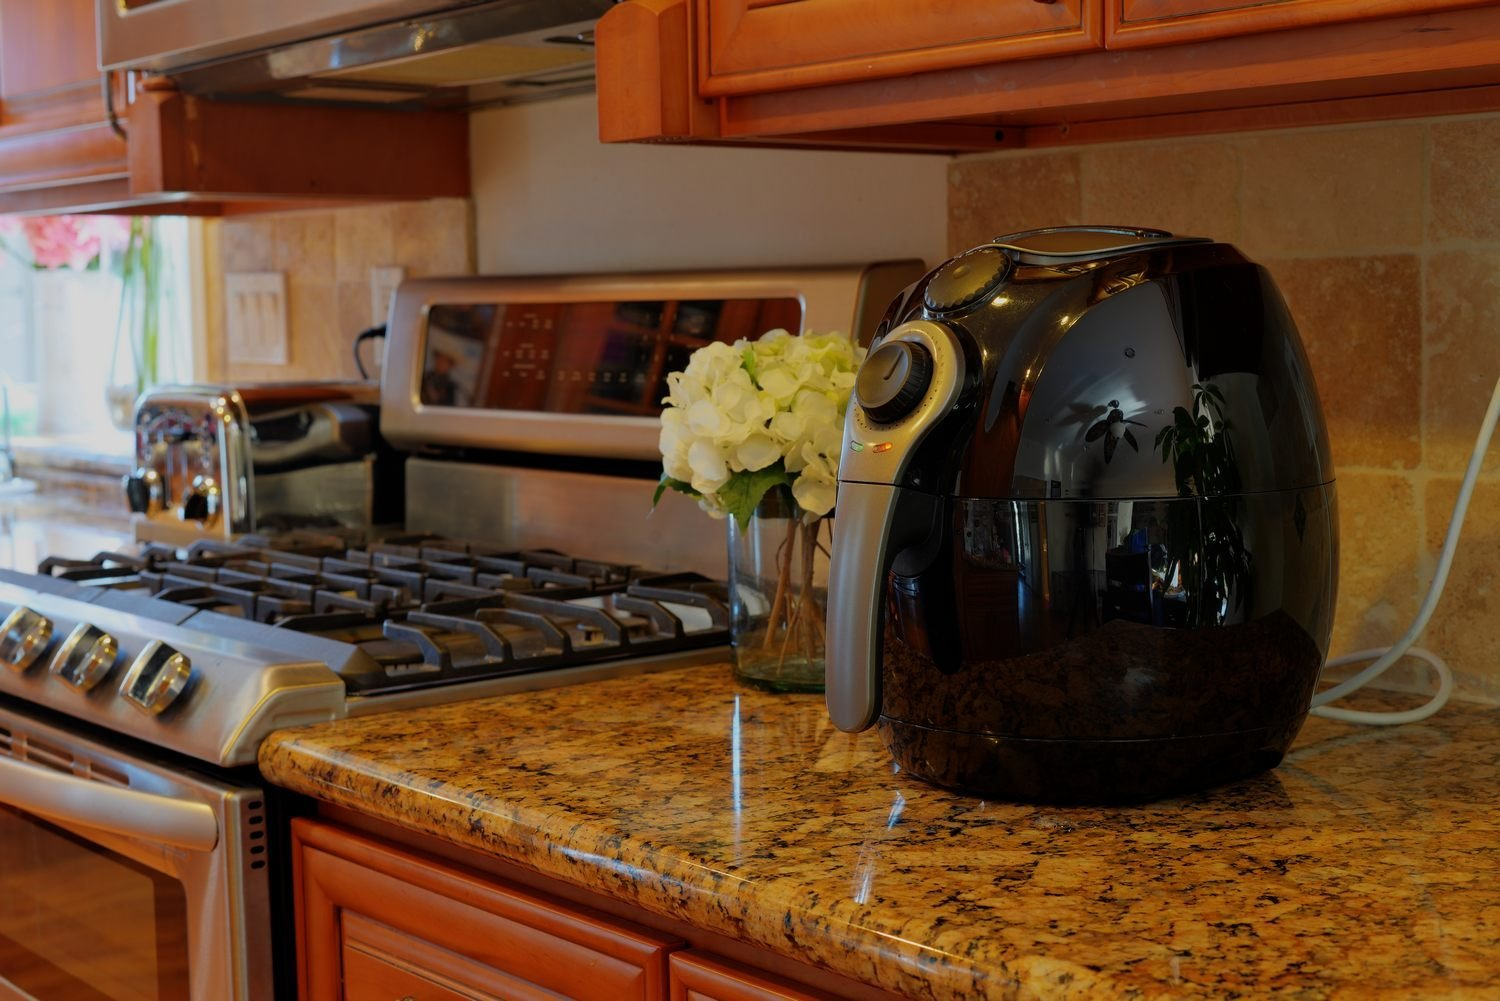 If you want a high quality fryer under $100, the Avalon Bay AB-Airfryer100B is a very good choice.